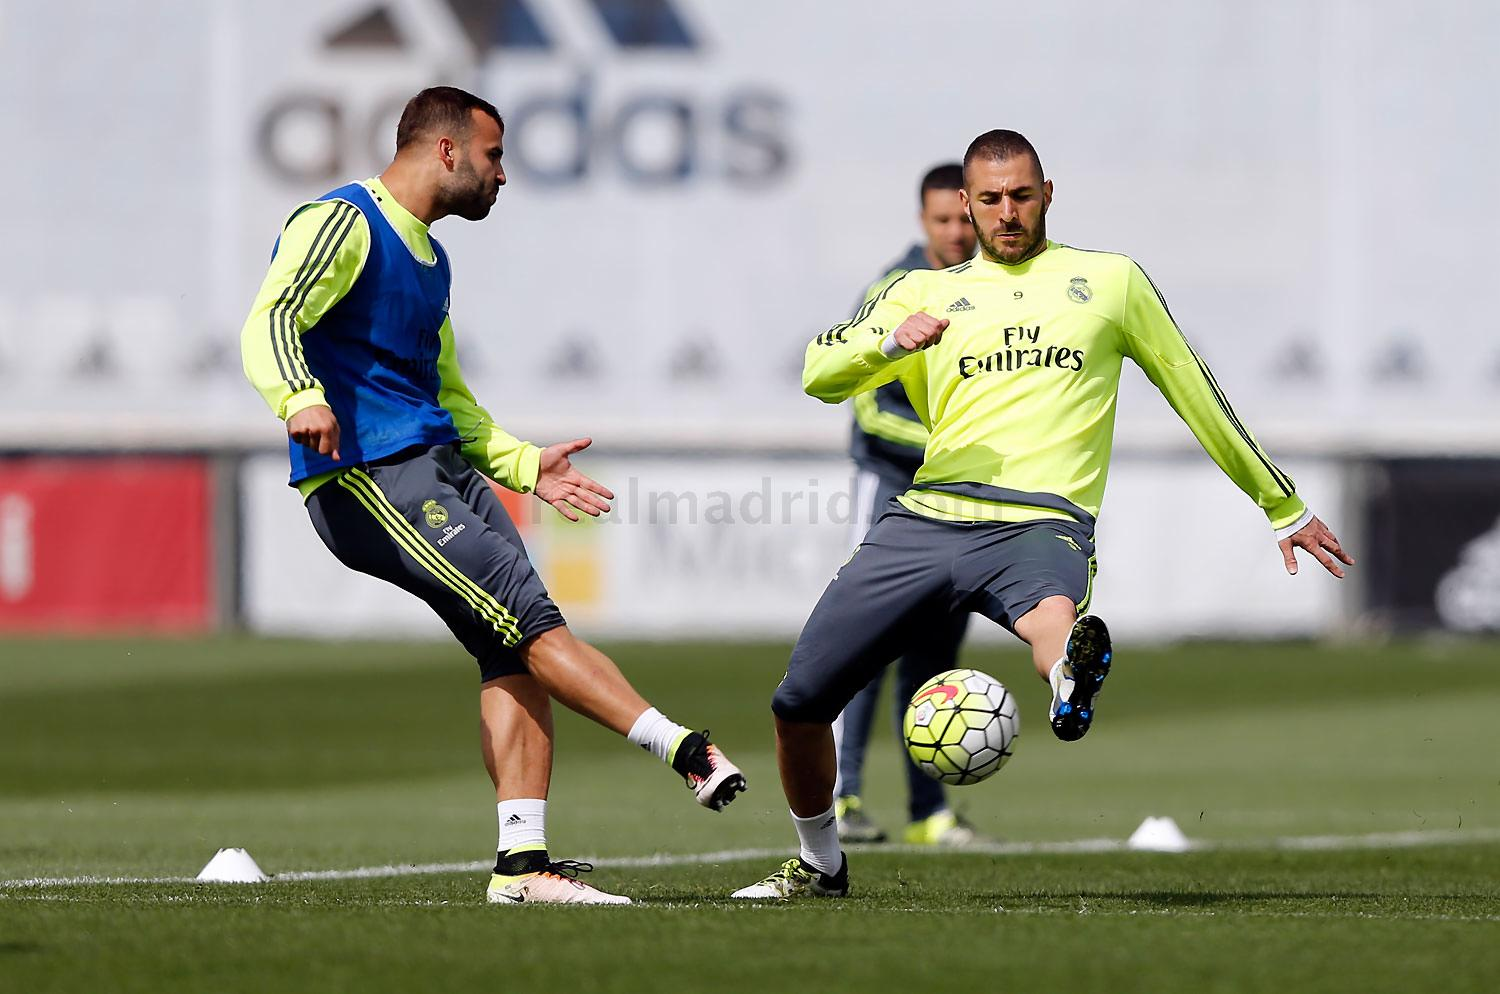 Real Madrid - Entrenamiento del Real Madrid - 07-05-2016